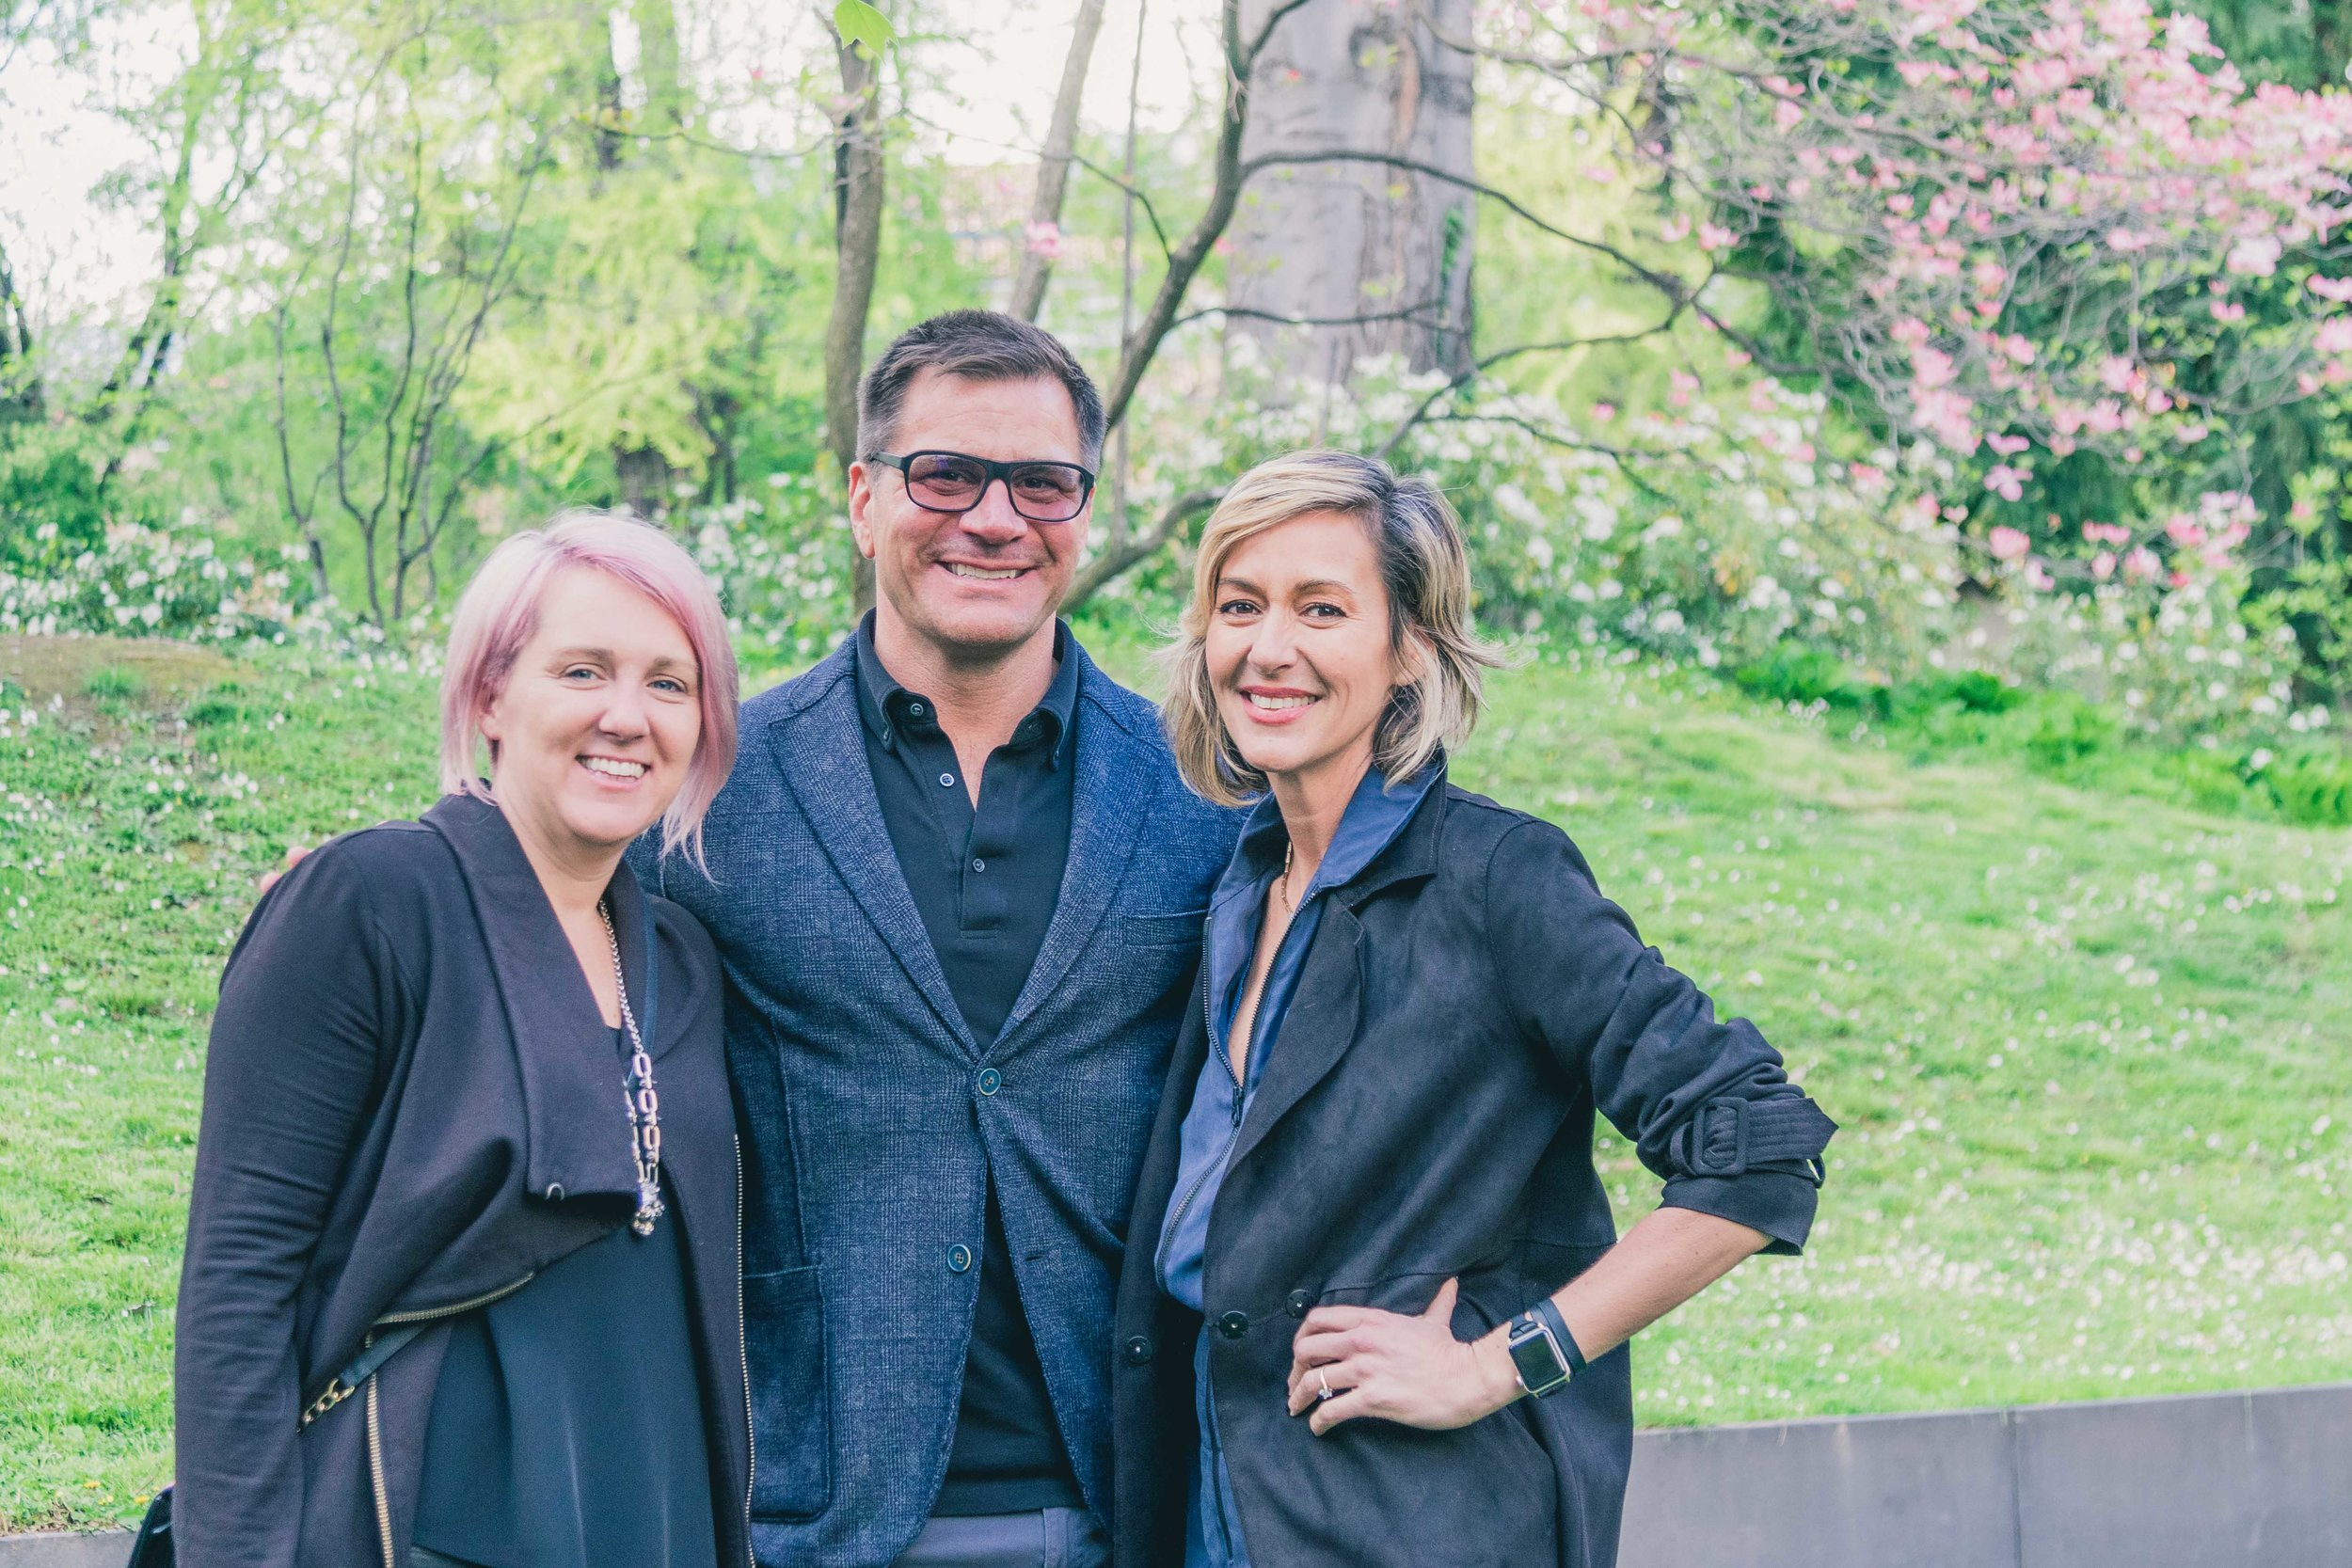 Tracy Hiner of  Black Crow Studios , interior designer  Stephan Jones  and Ginna Christensen of  GC Collaborative  at our Milan welcome party at the Bulgari Hotel this spring. Photograph by  Gintare Bandinskaite .